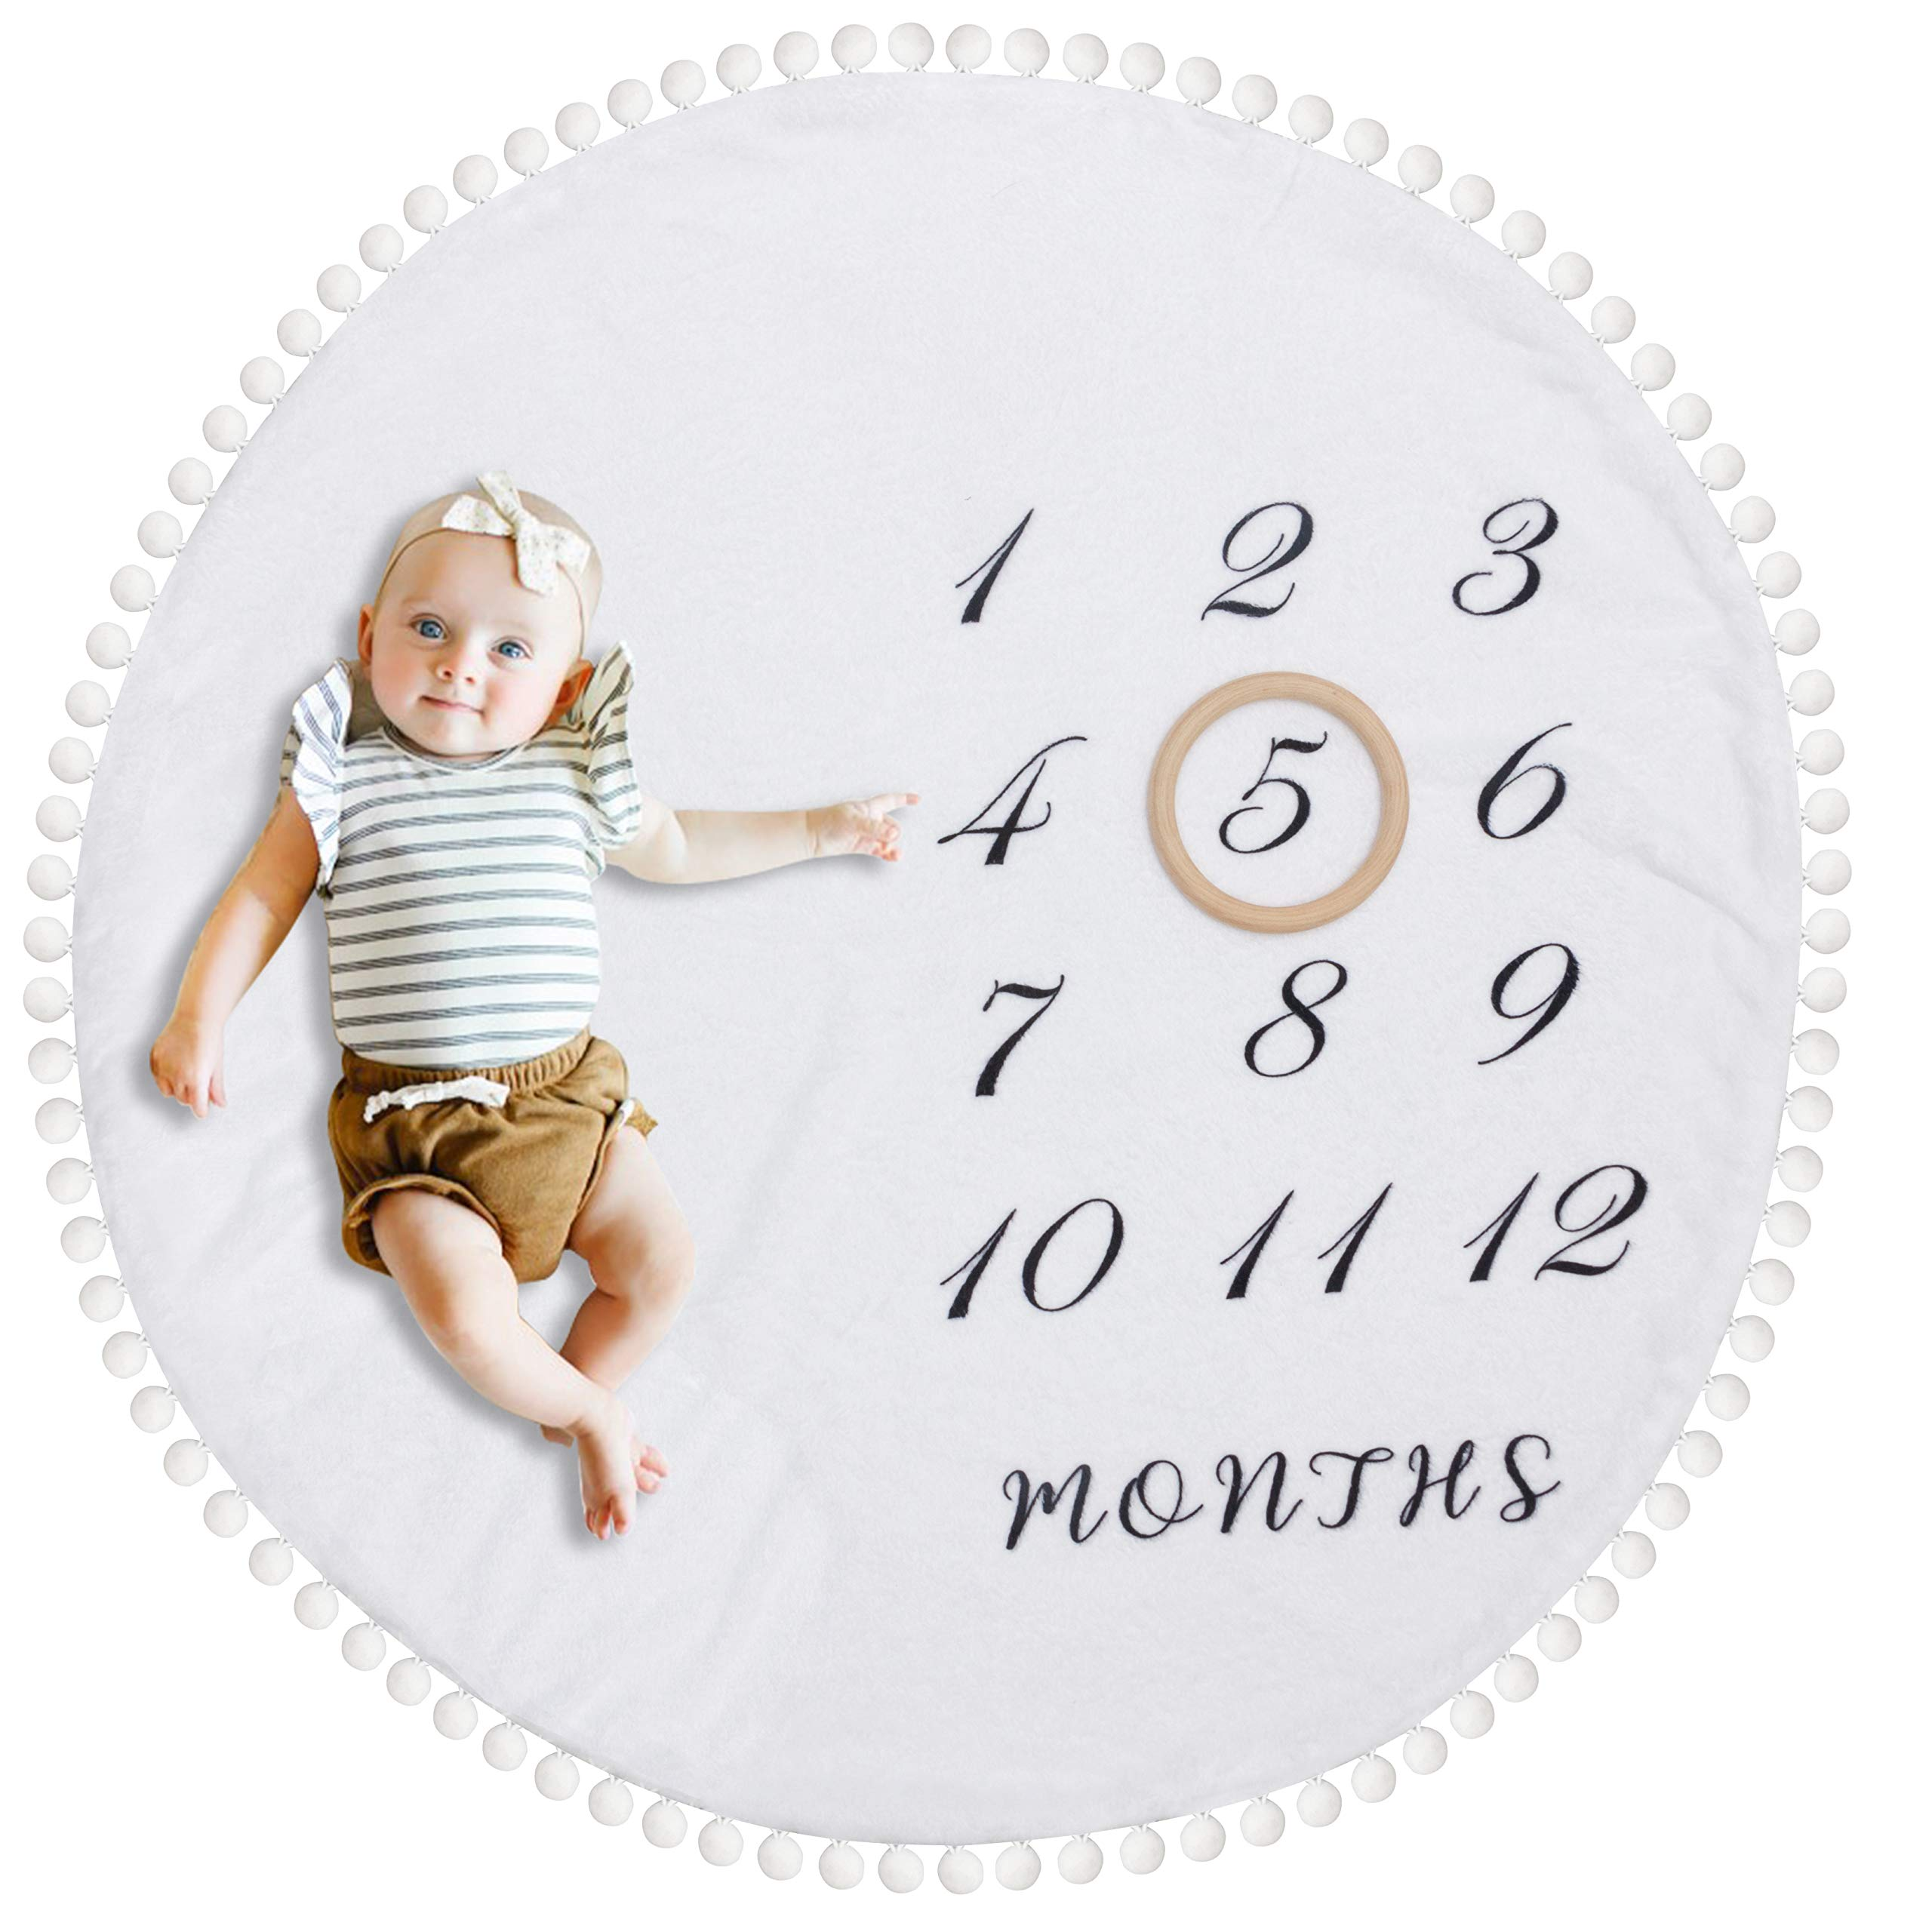 HAN-MM Baby Monthly Milestone Blanket with Wooden Circle Ring Reversible Double Layer Pom Pom Ball Thick Flannel Round Rug for Boy Girl, Extra Soft Baby Photography Props,Newborn Baby Shower Gifts by HAN-MM